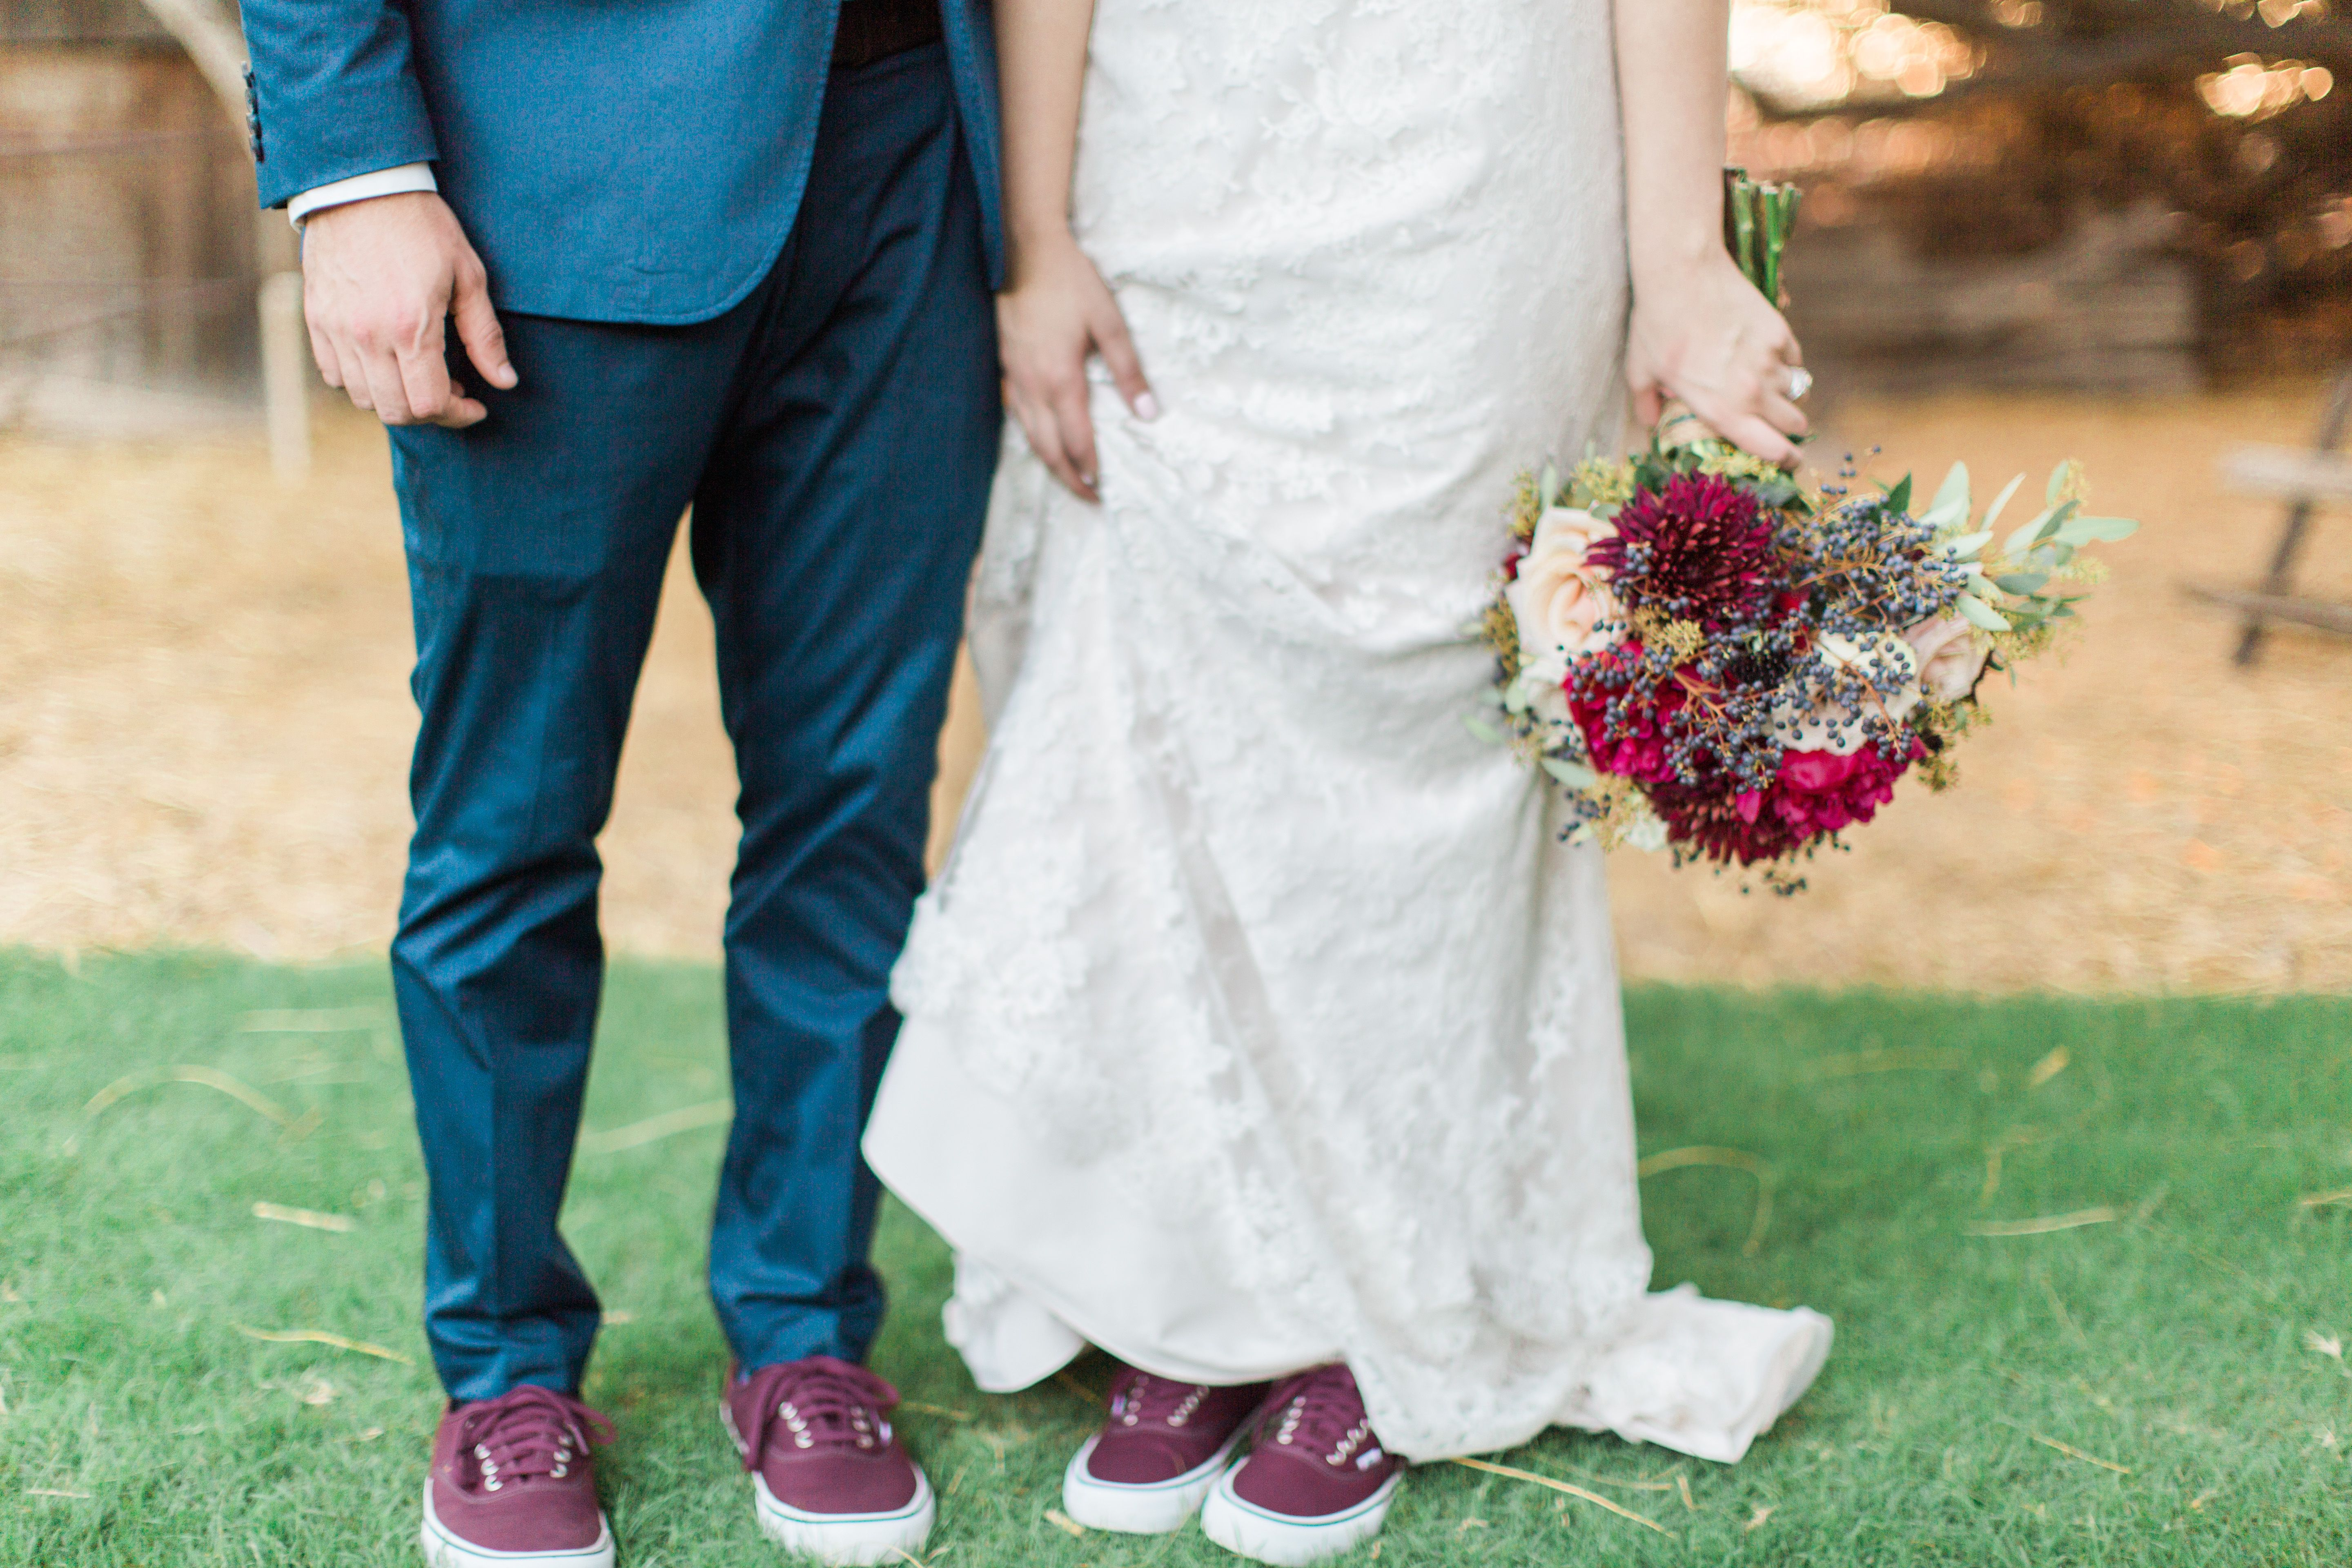 Matching Wedding Shoes Burgundy Wedding Vans Bride And Groom